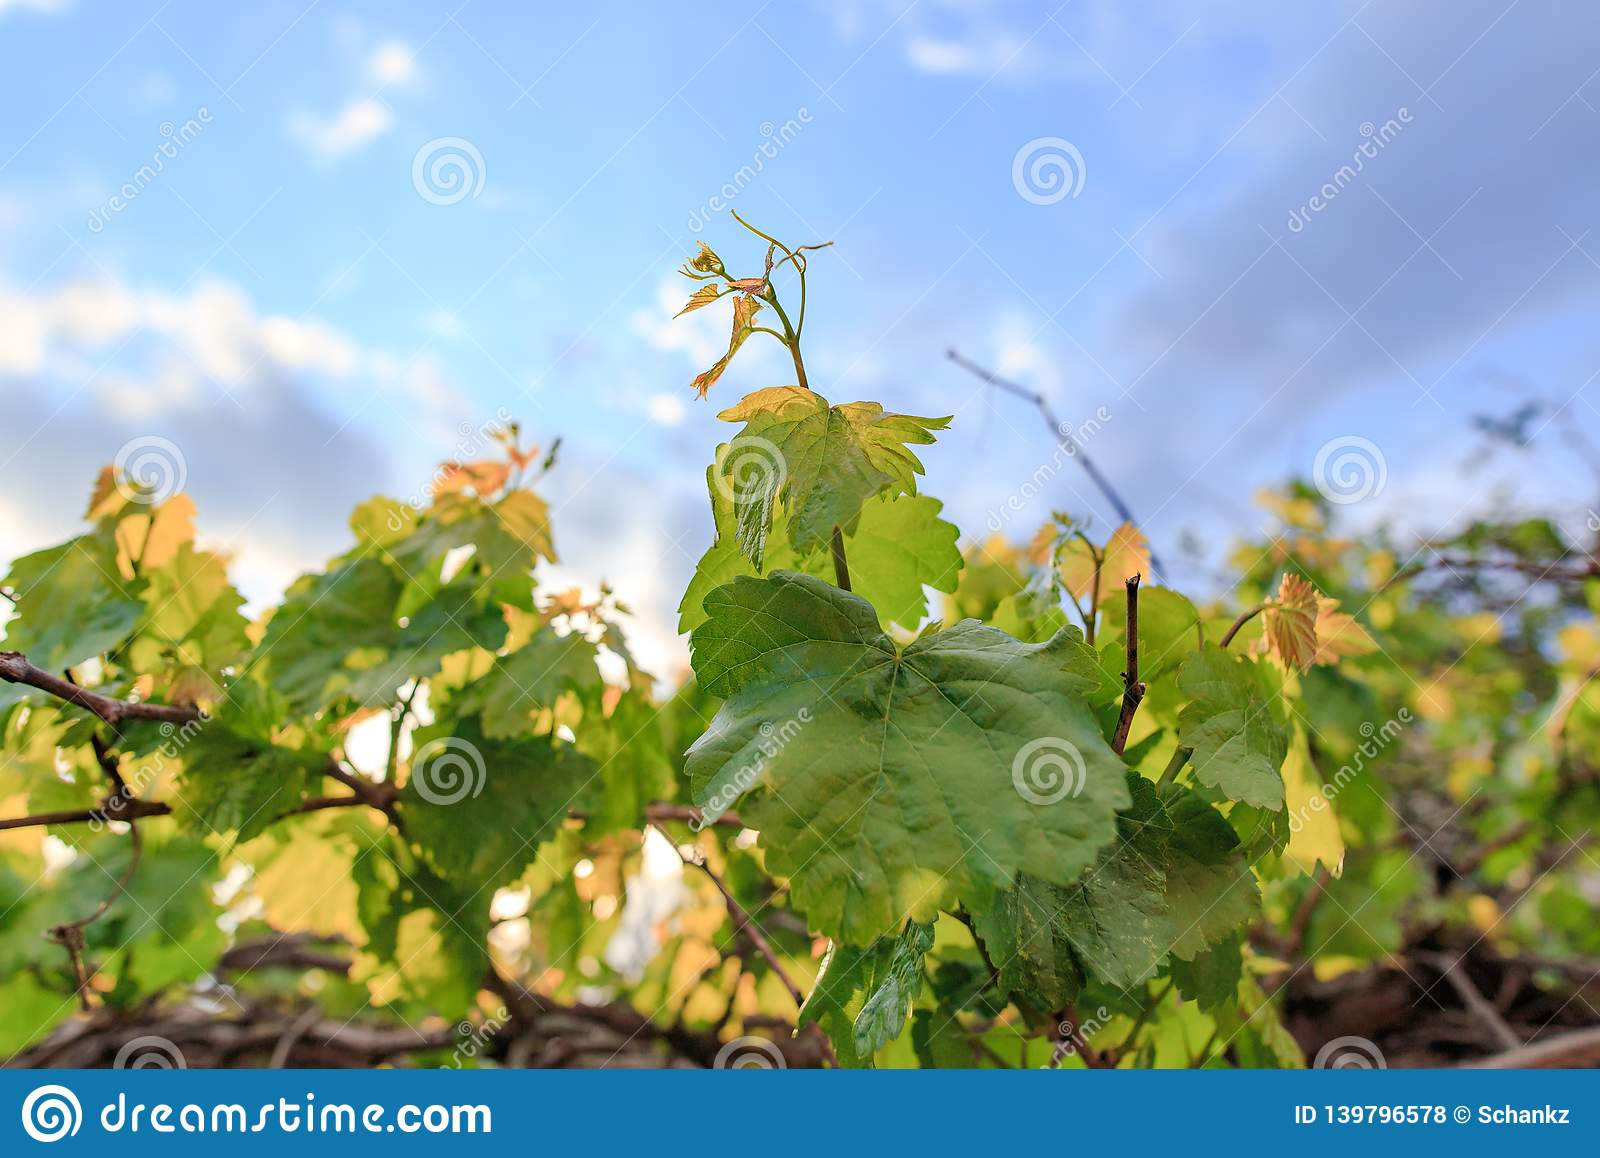 Leaves on grapes in nature